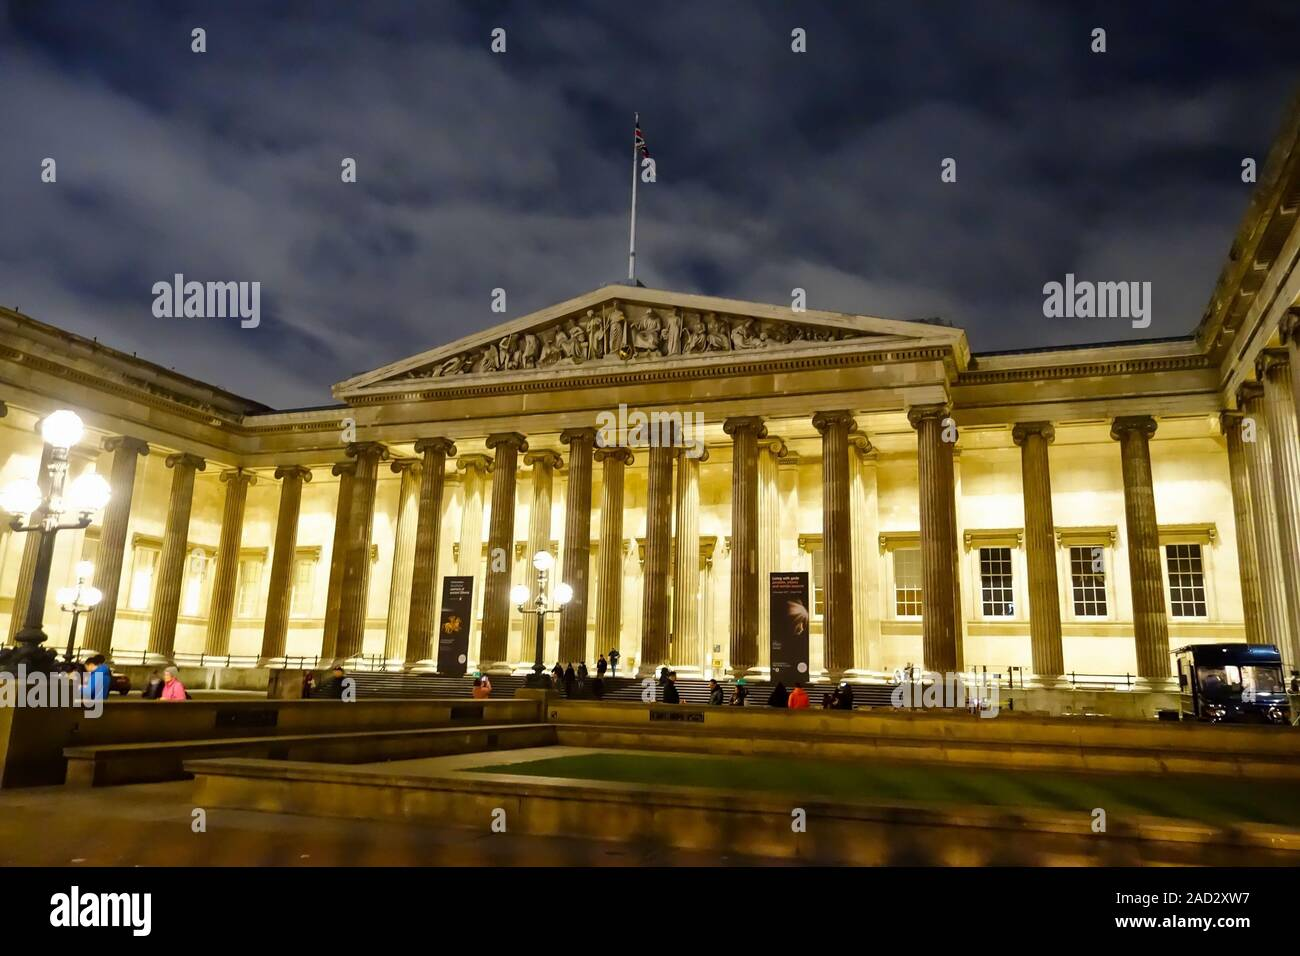 the-entrance-to-the-british-museum-at-night-time-great-russell-st-bloomsbury-london-england-uk-2AD2XW7.jpg